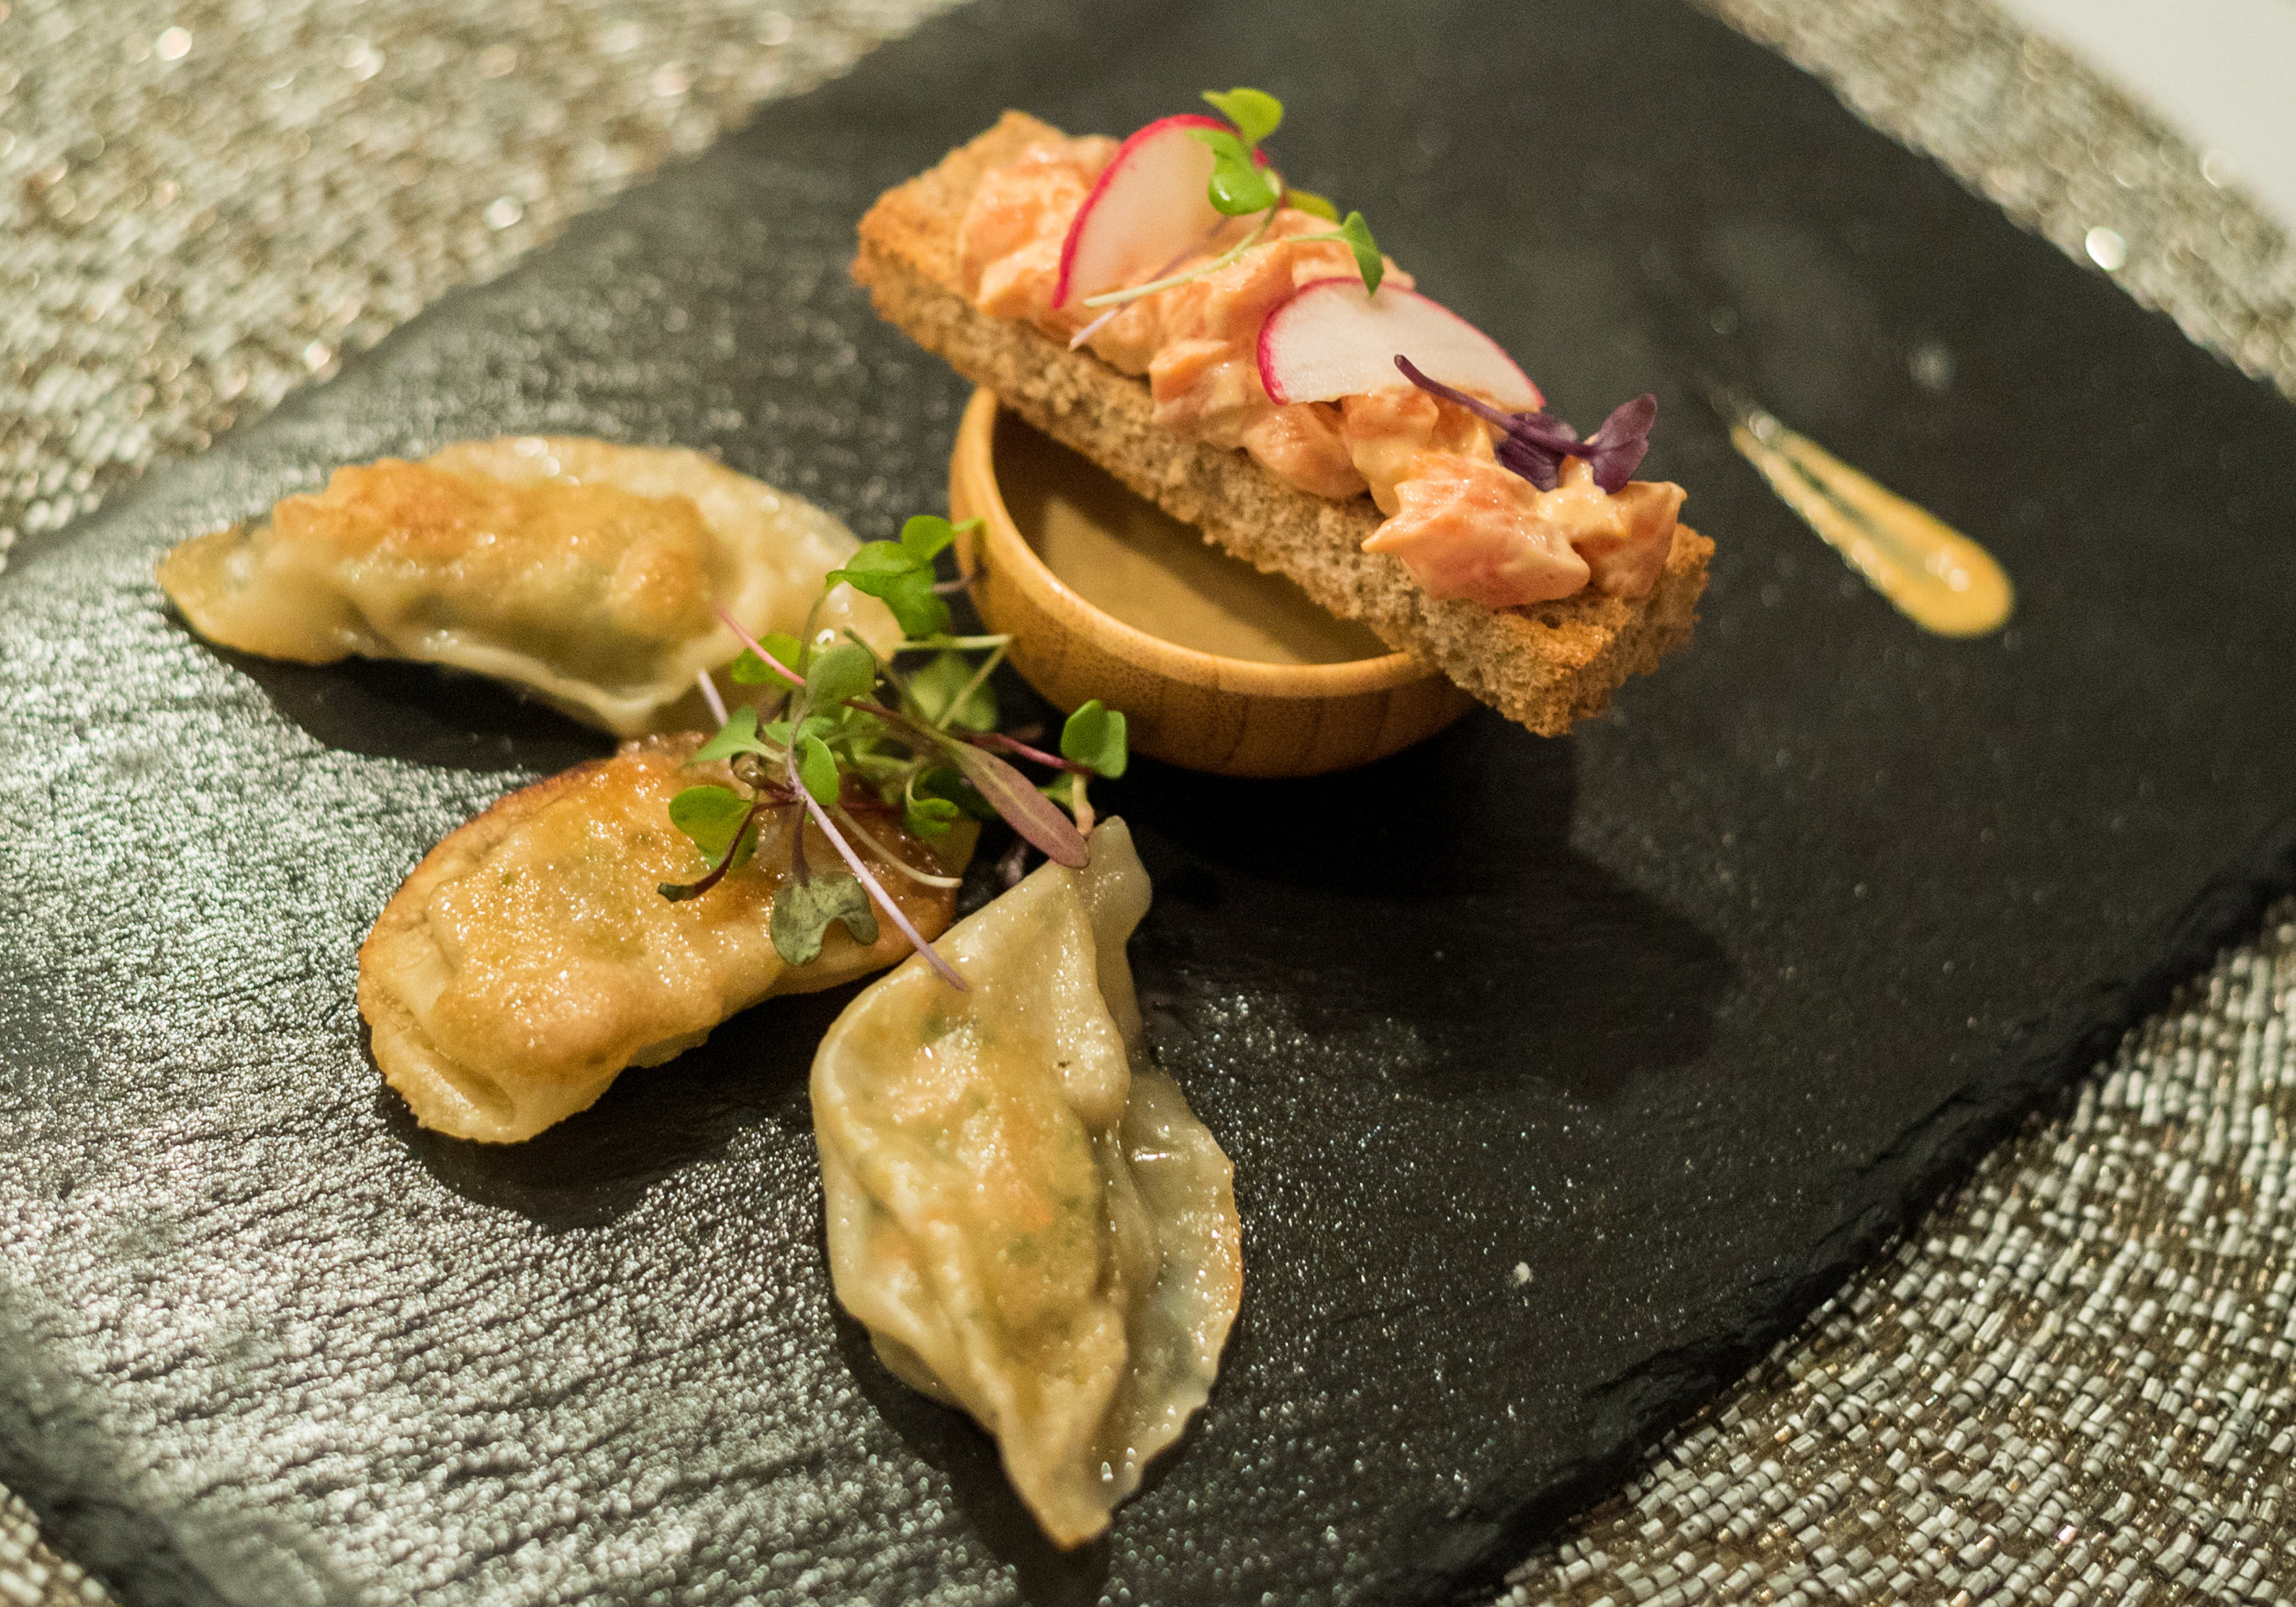 Shrimp gyosas with ponzu dipping sauce, salmon tartare crostini.